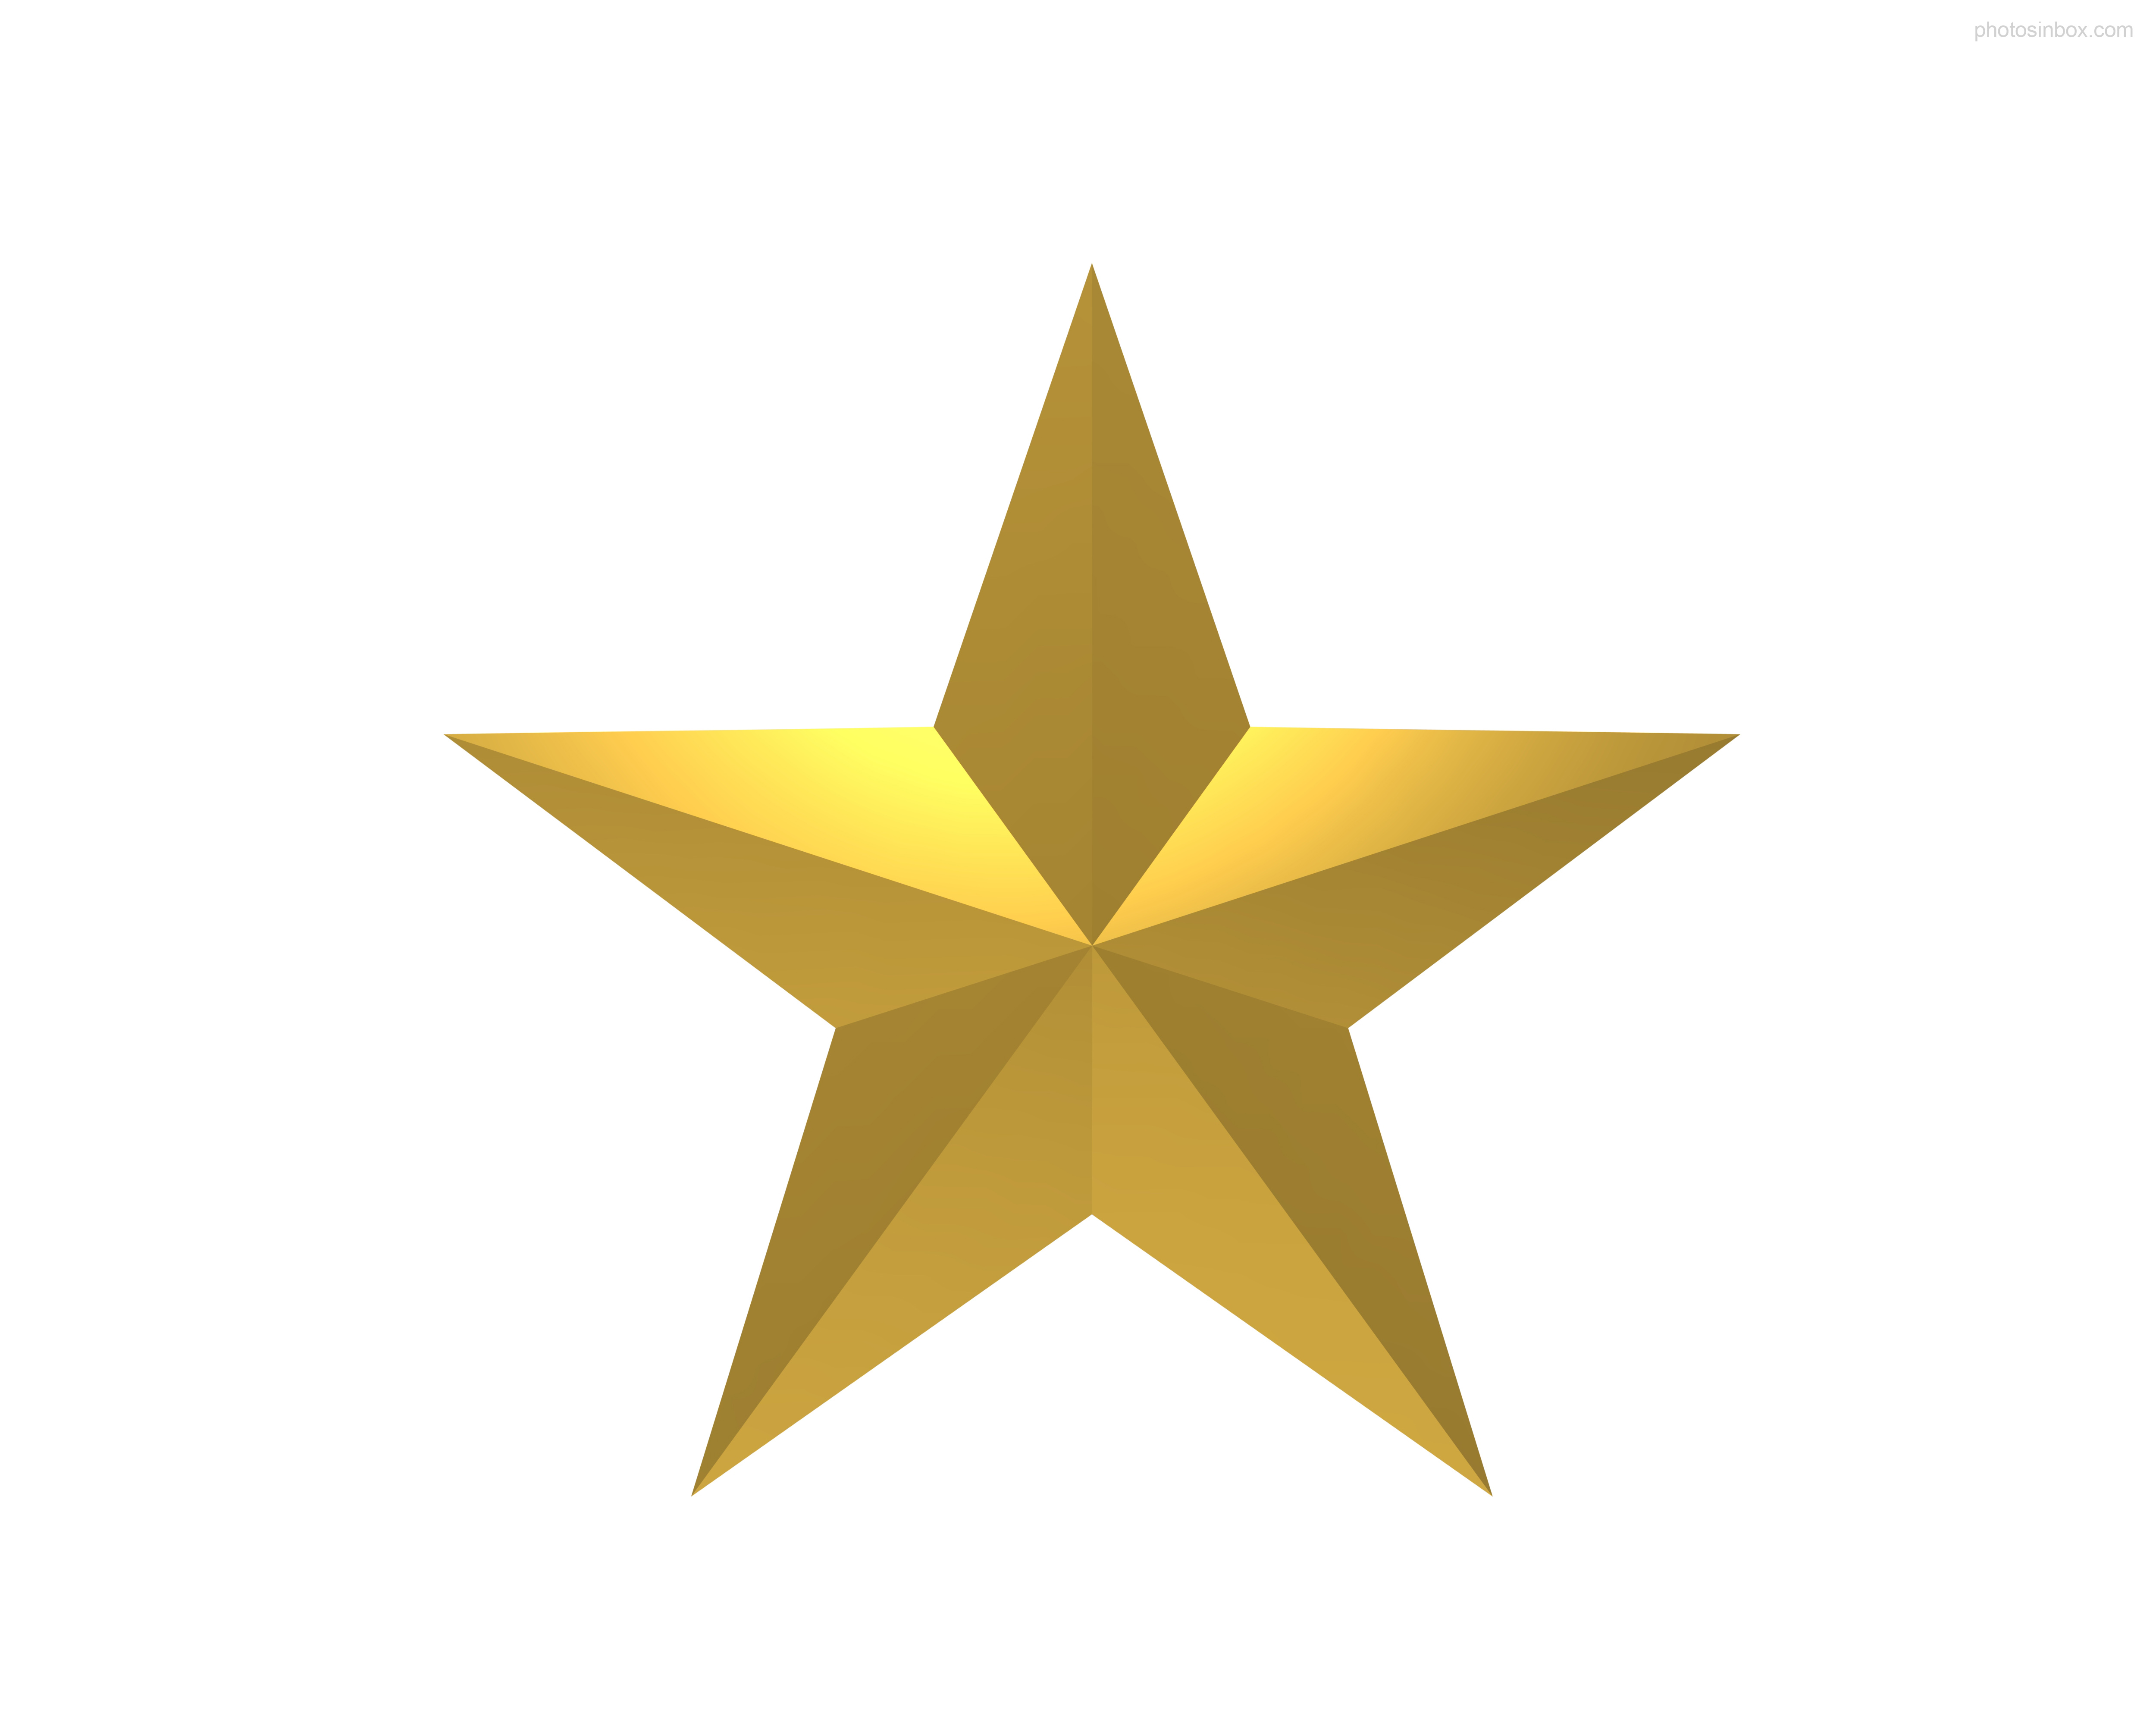 star icon clipart transparent background